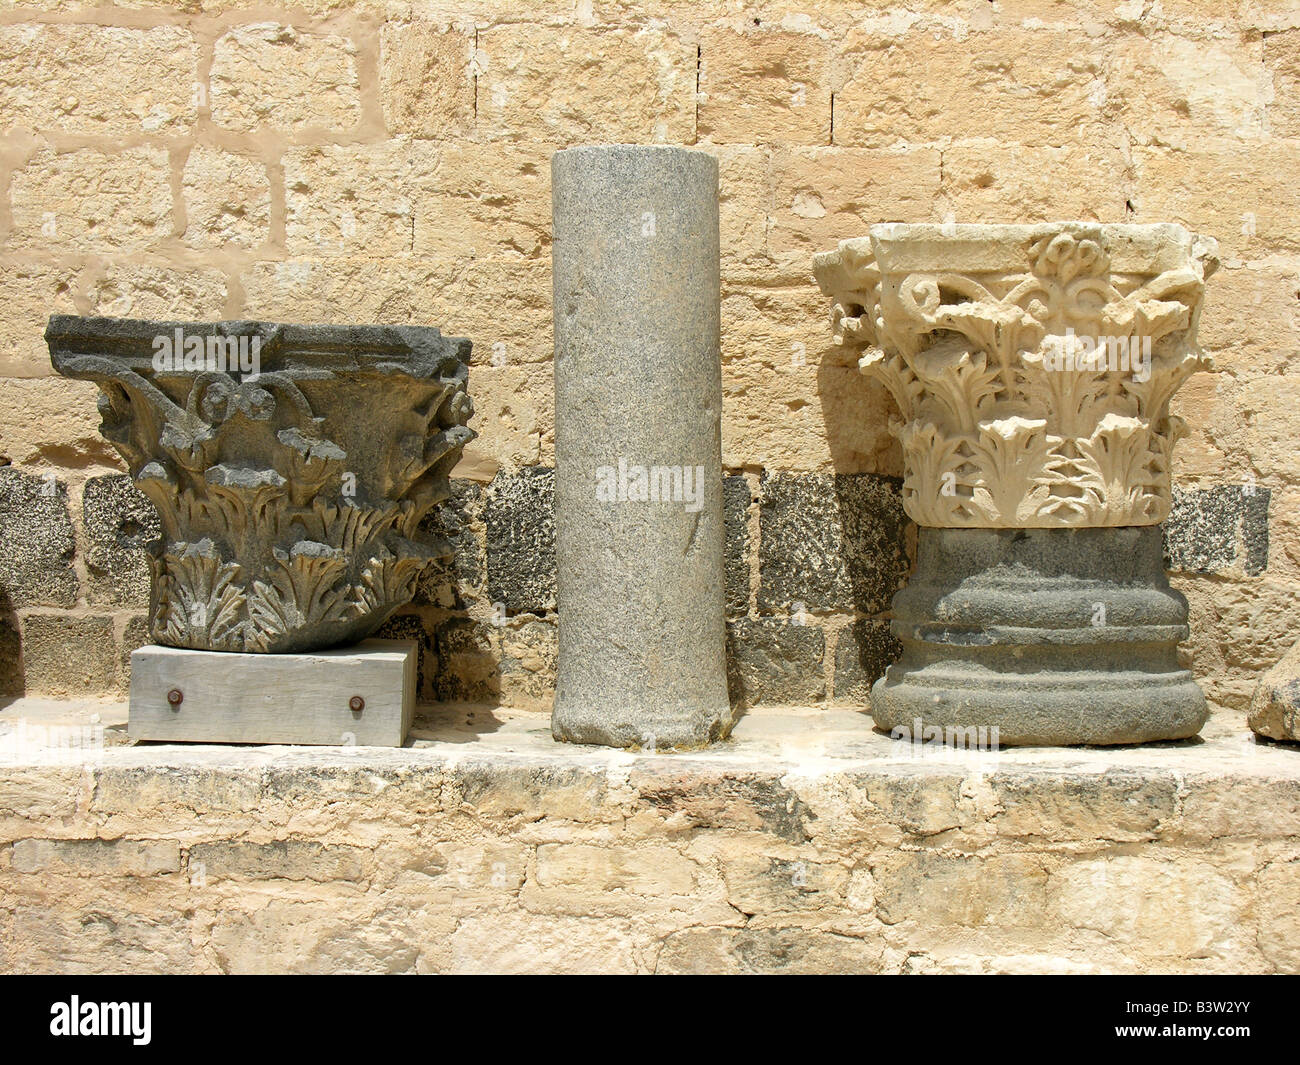 Acanthus leaves carved into pillar bases at the Roman city of Jerash north of Amman Jordan - Stock Image